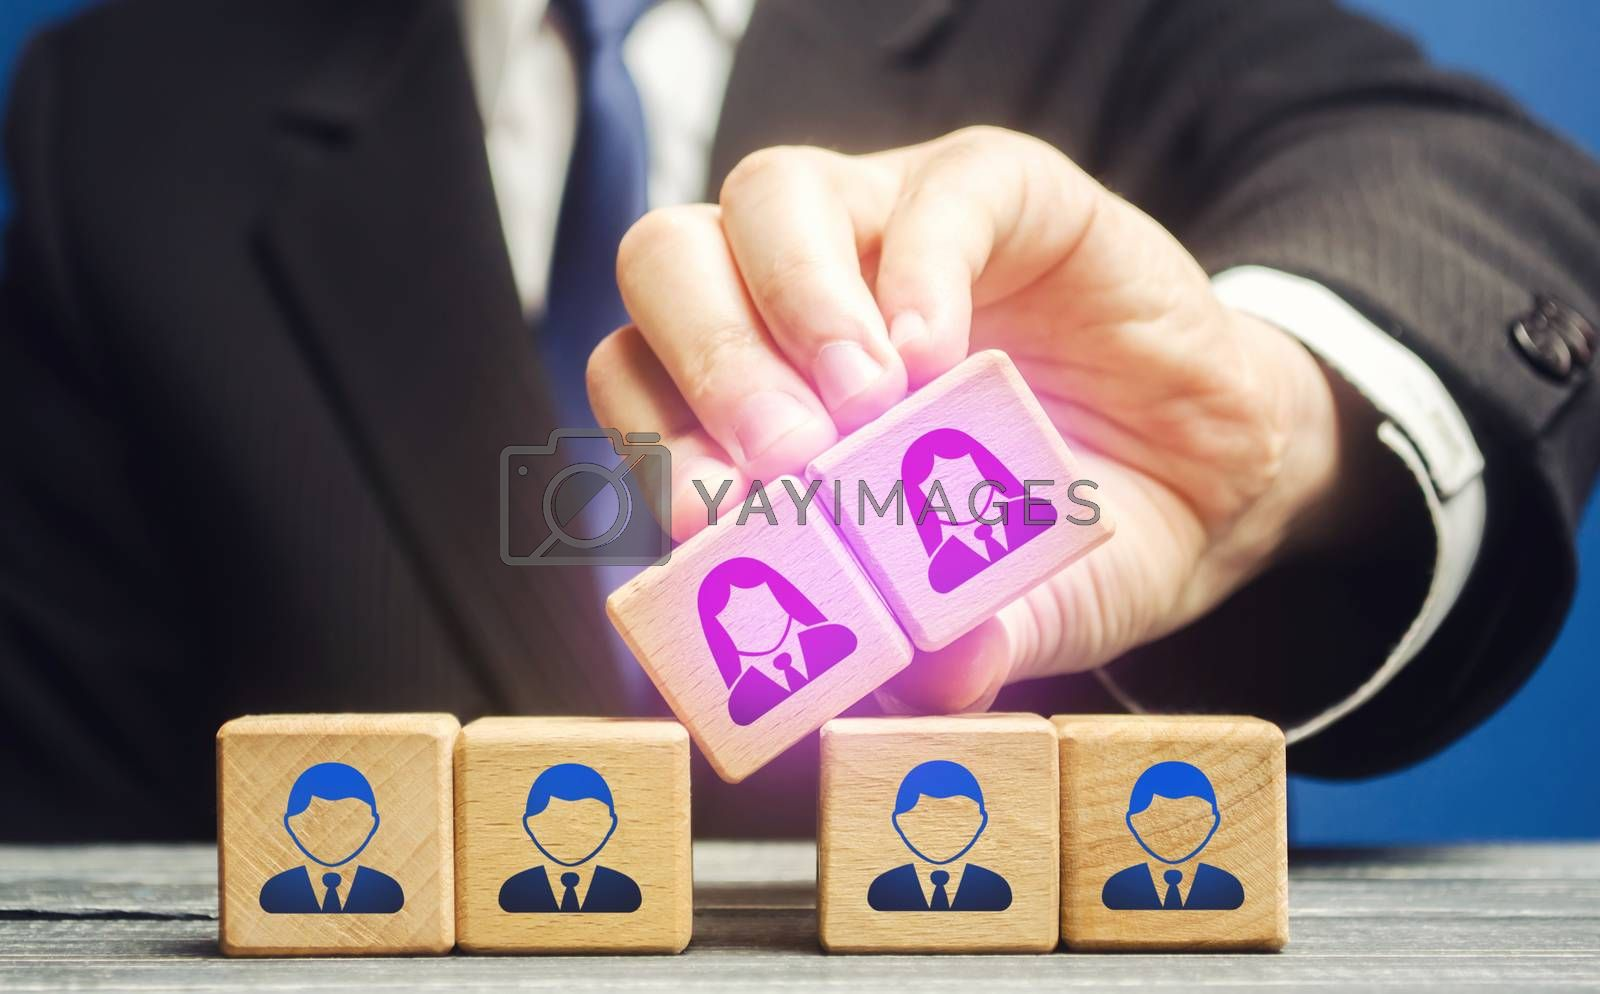 Businessman integrates female employees into male team staff. Gender equality. Creation gender balance in the company to improve work efficiency. Diversity in business. Unified career potential.